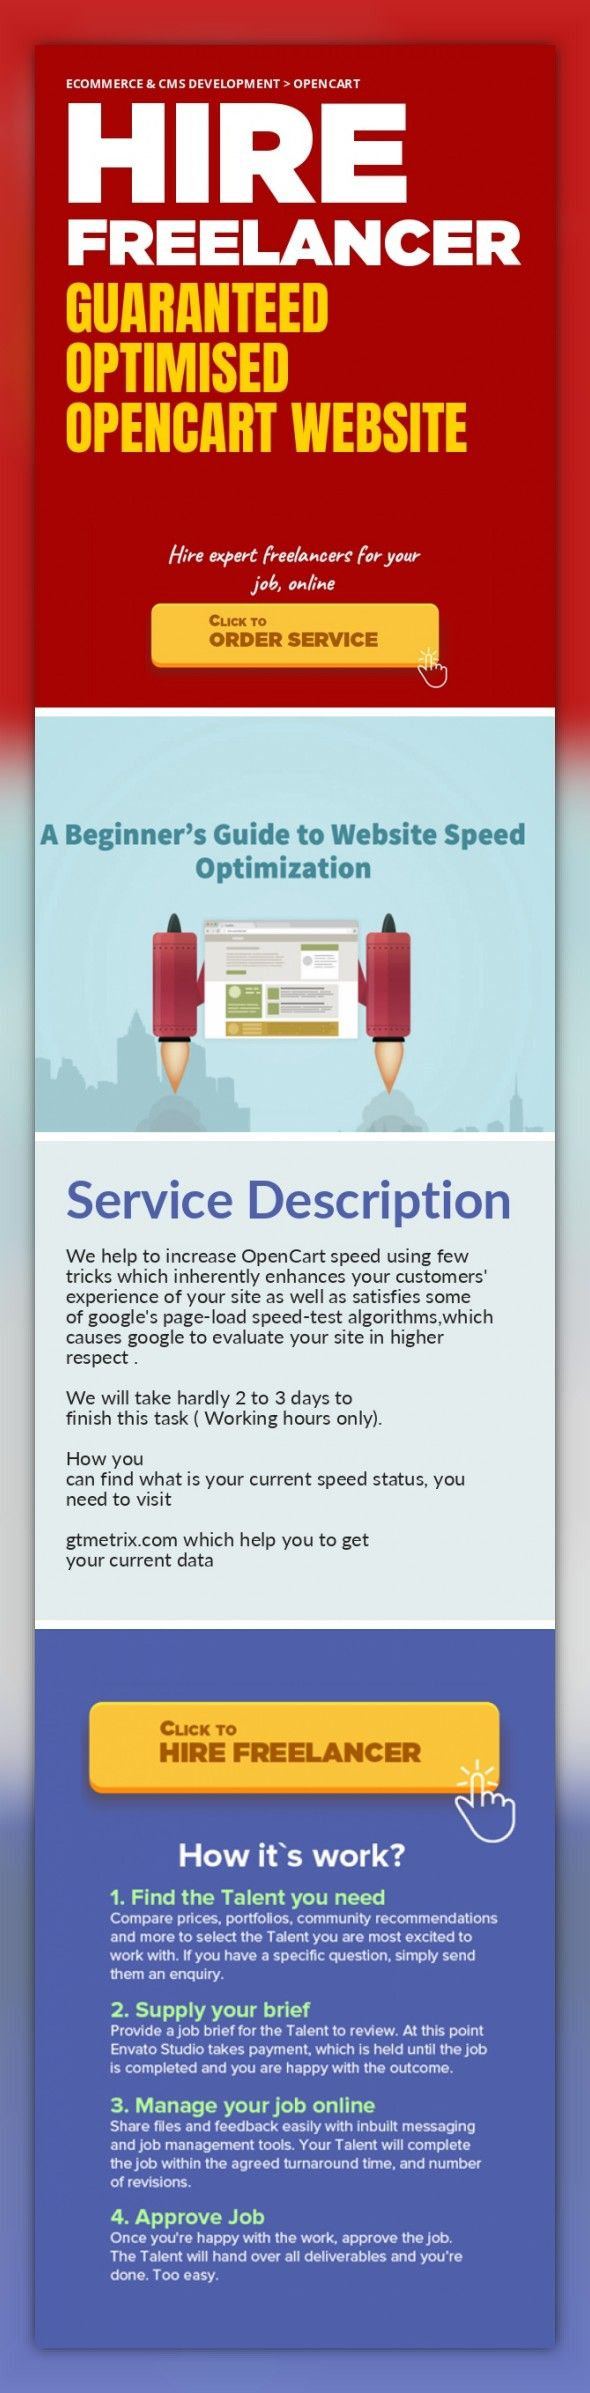 Guaranteed Optimised OpenCart Website Ecommerce & CMS Development, OpenCart   We help to increase OpenCart speed using few tricks which inherently enhances your customers' experience of your site as well as satisfies some of google's page-load speed-test algorithms,which causes google to evaluate your site in higher respect .    We will take hardly 2 to 3 days to finish this task ( Working hours o...